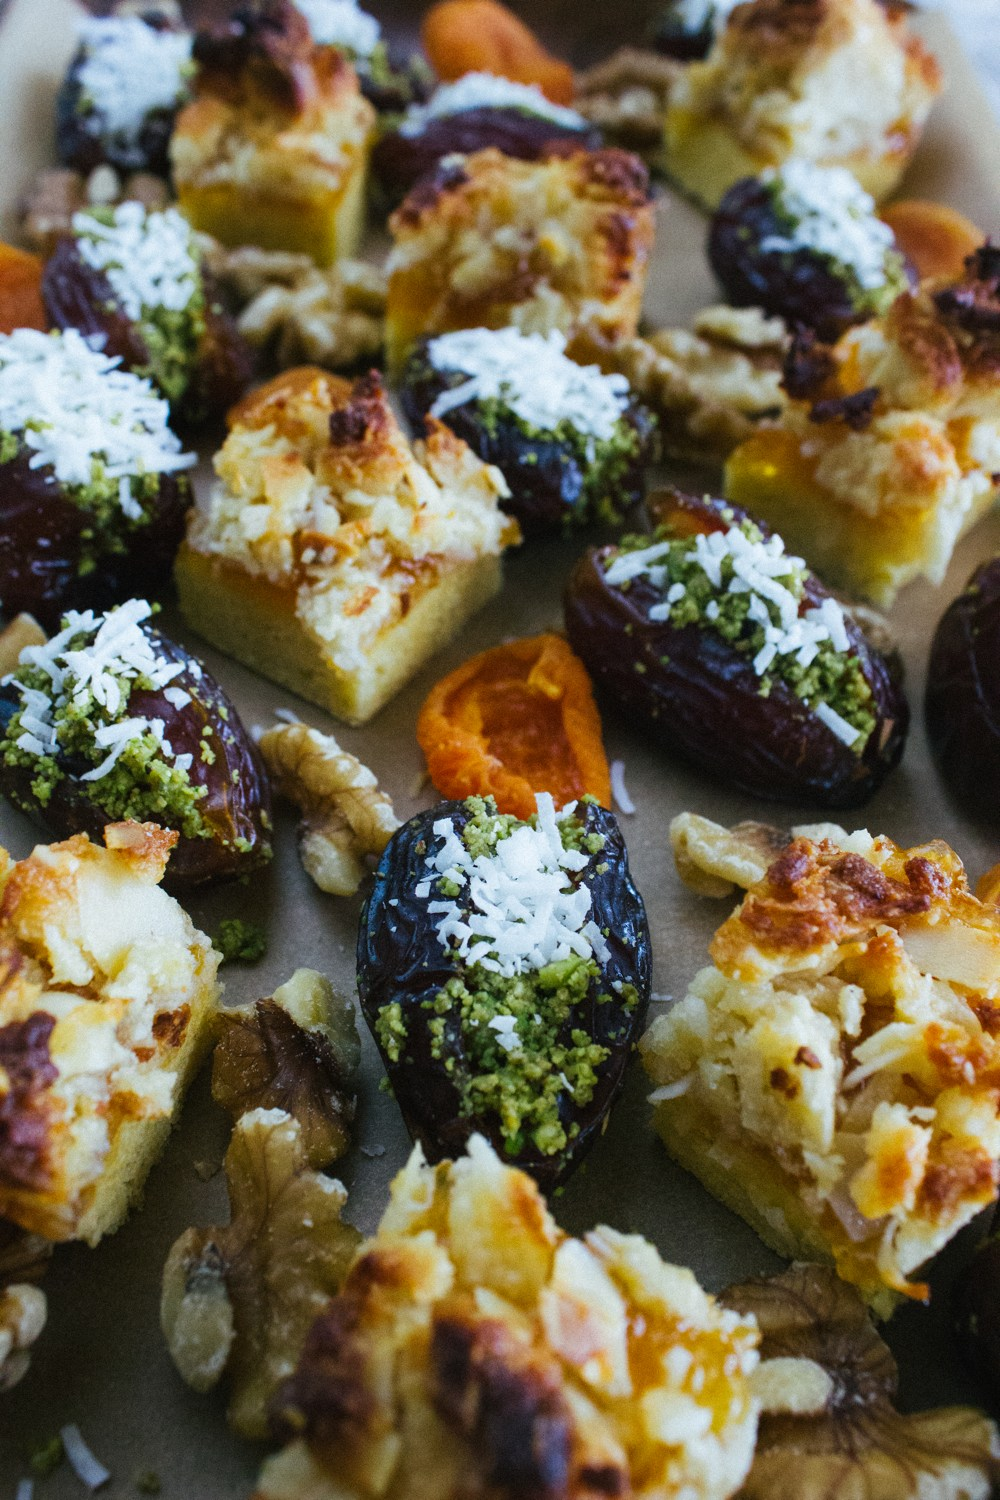 Pistachio-Stuffed Dates With Coconut Recipe — Dishmaps